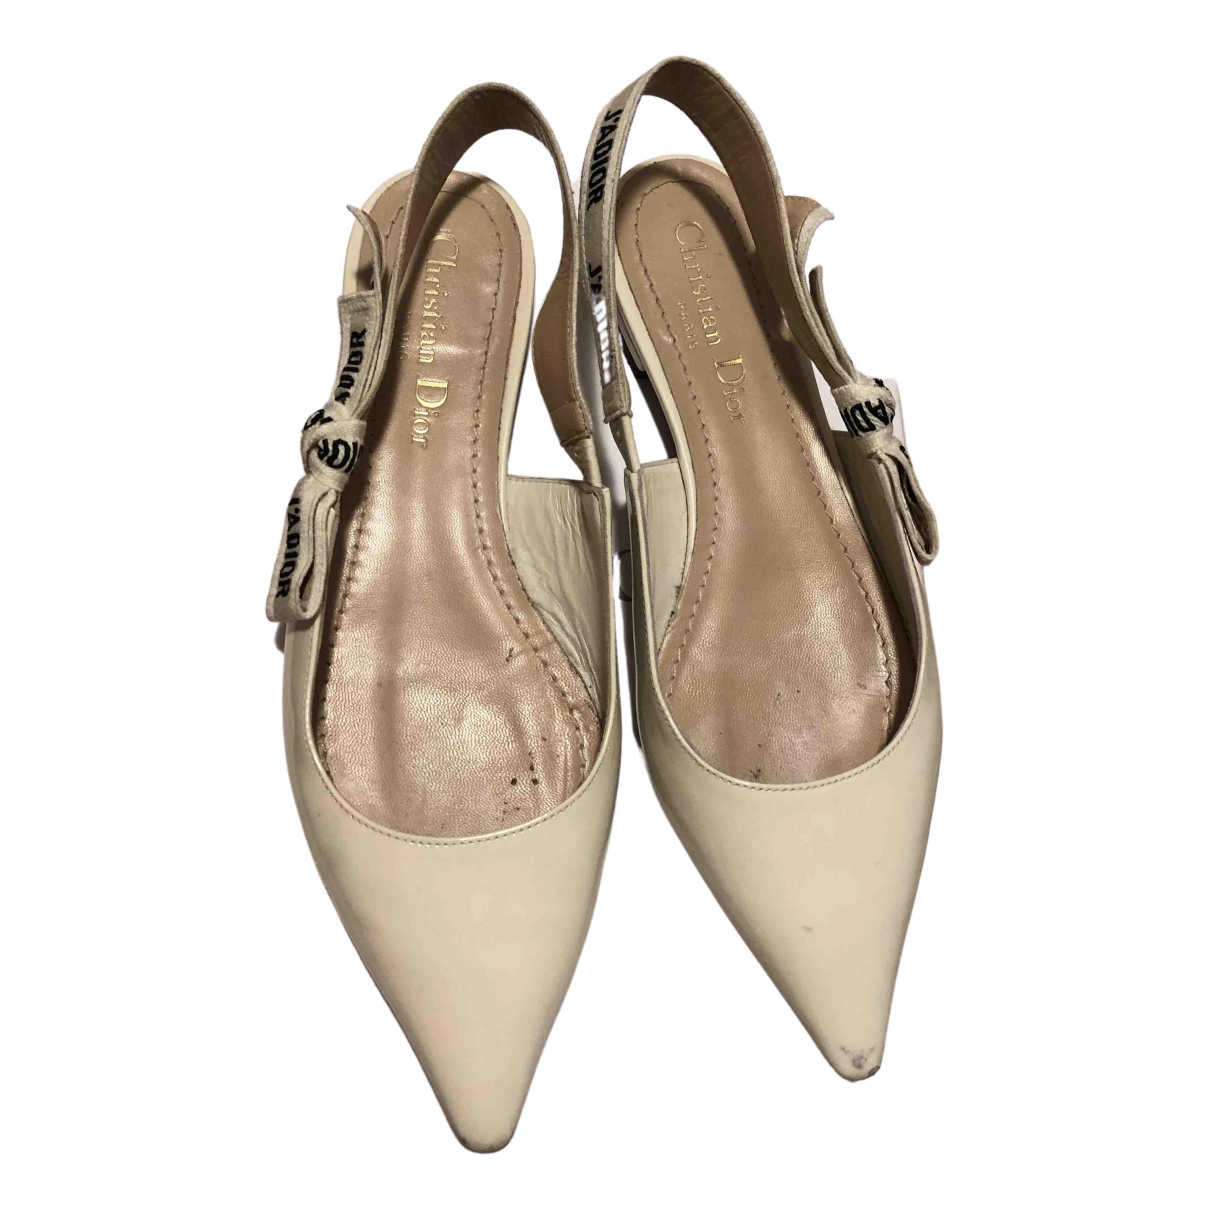 Dior J'adior White Patent leather Ballet flats for Women 36.5 IT